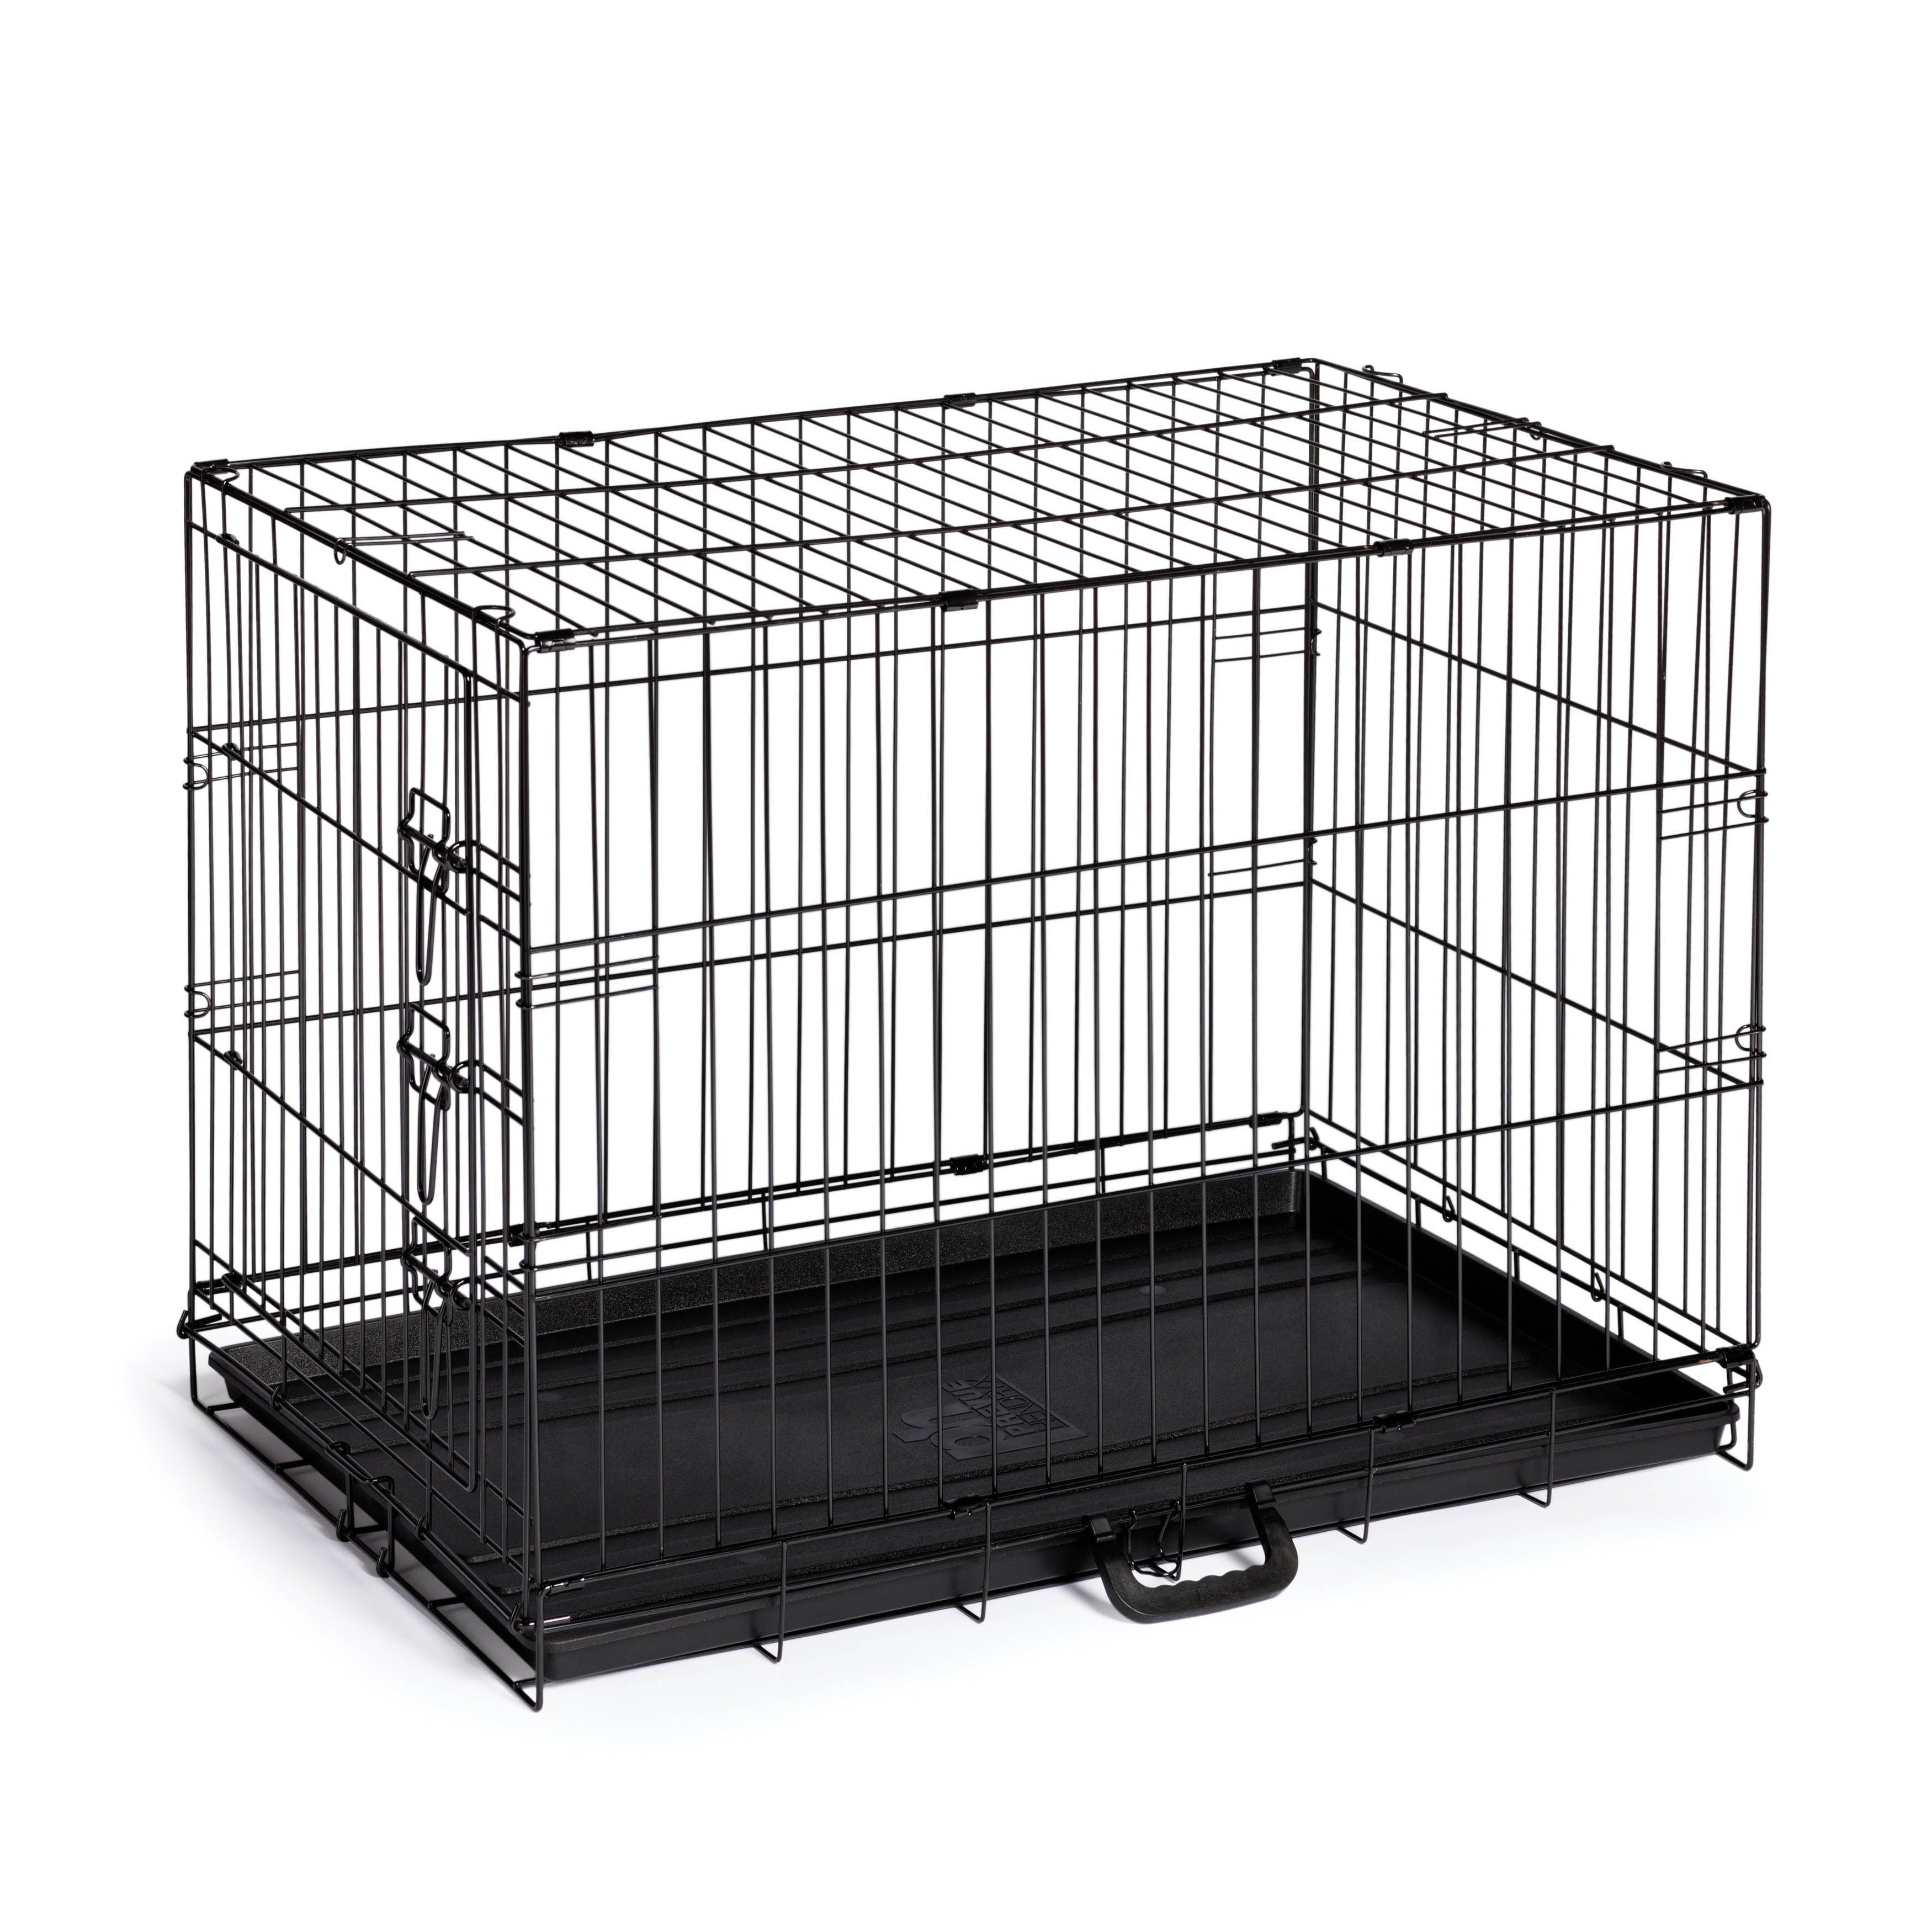 Prevue Pet Products Home On-The-Go Single Door Dog Crate X-Large E435 at Sears.com